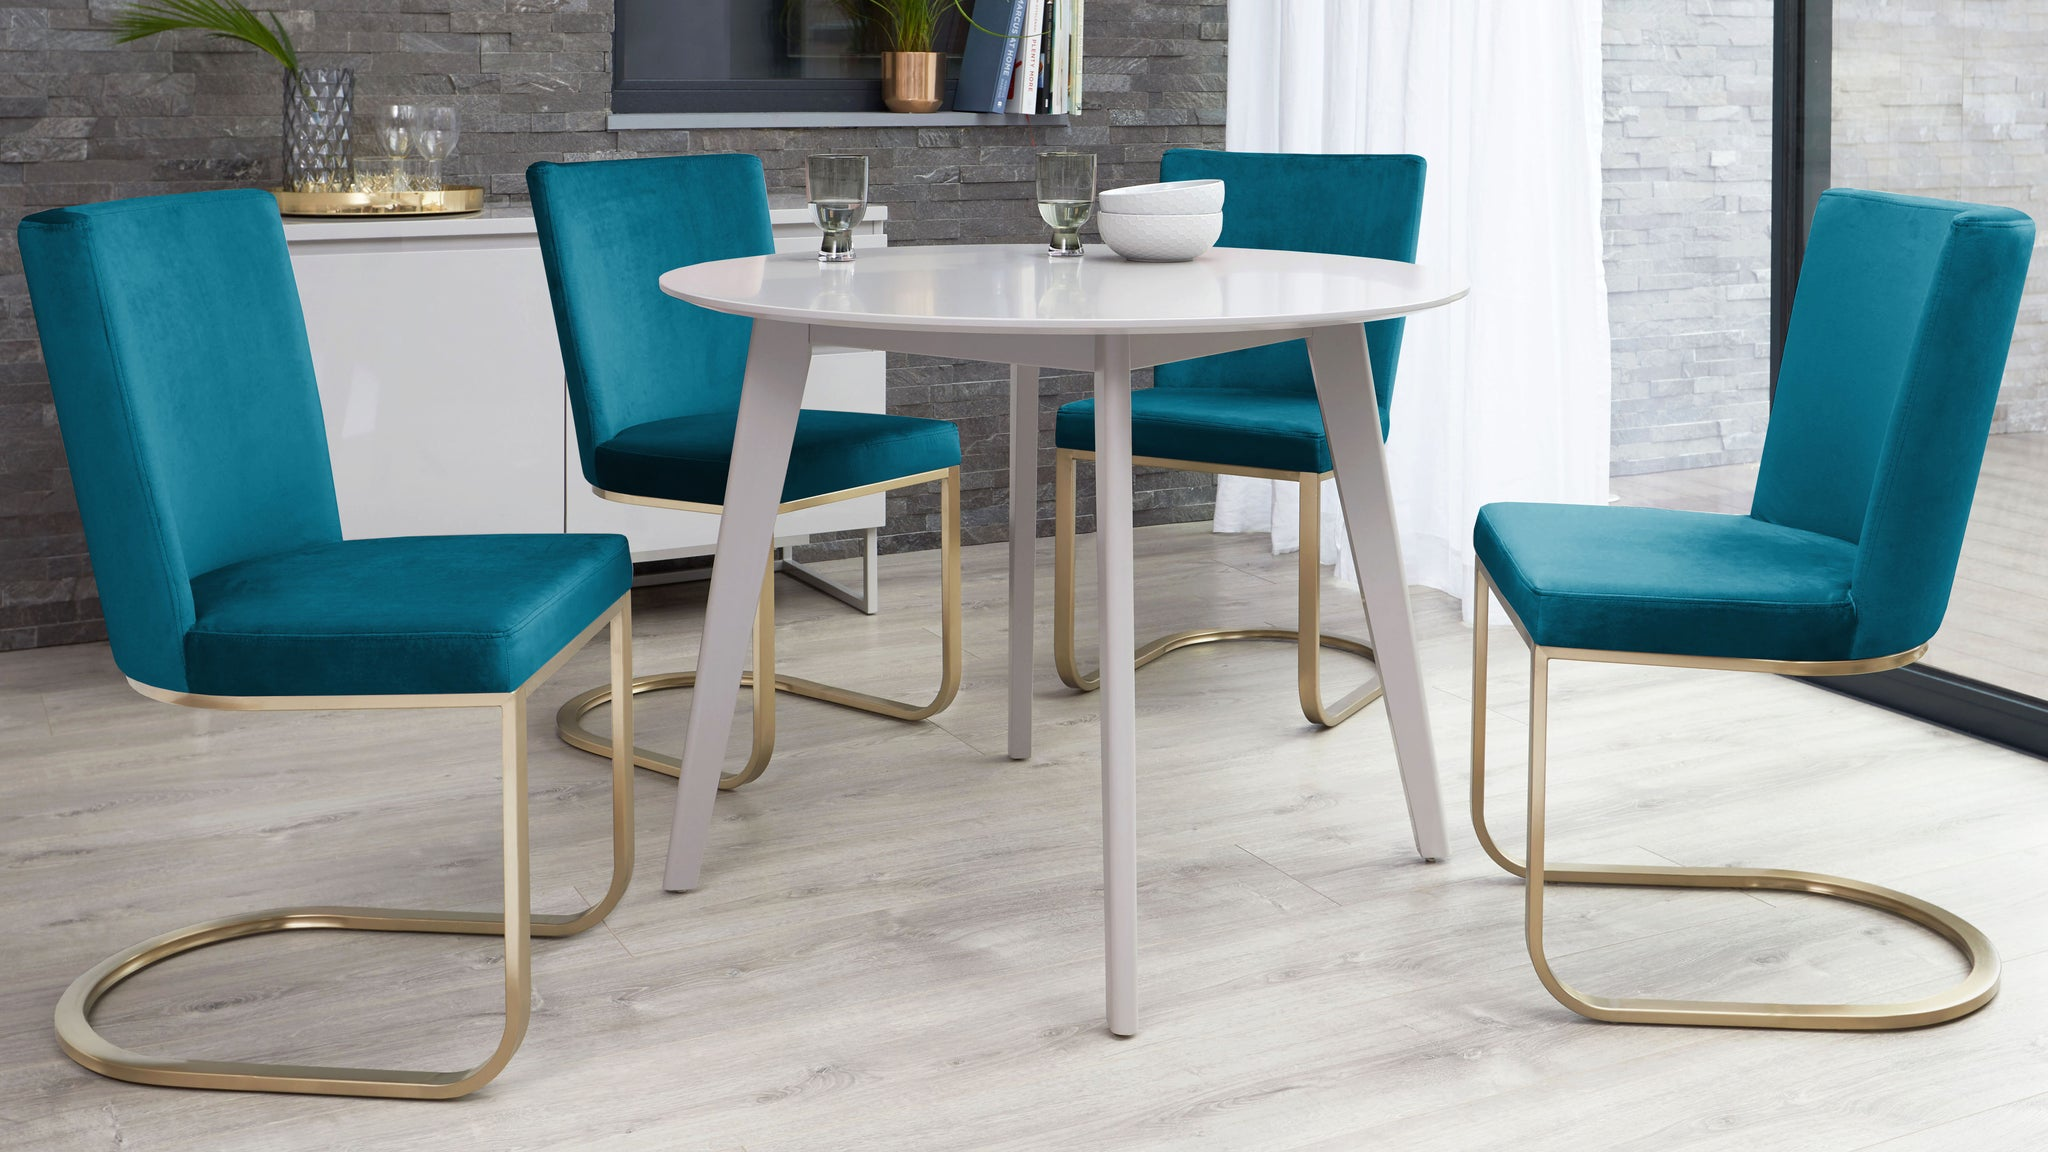 Terni Matt Grey And Form Teal Velvet With Brass 4 Seater Dining Set